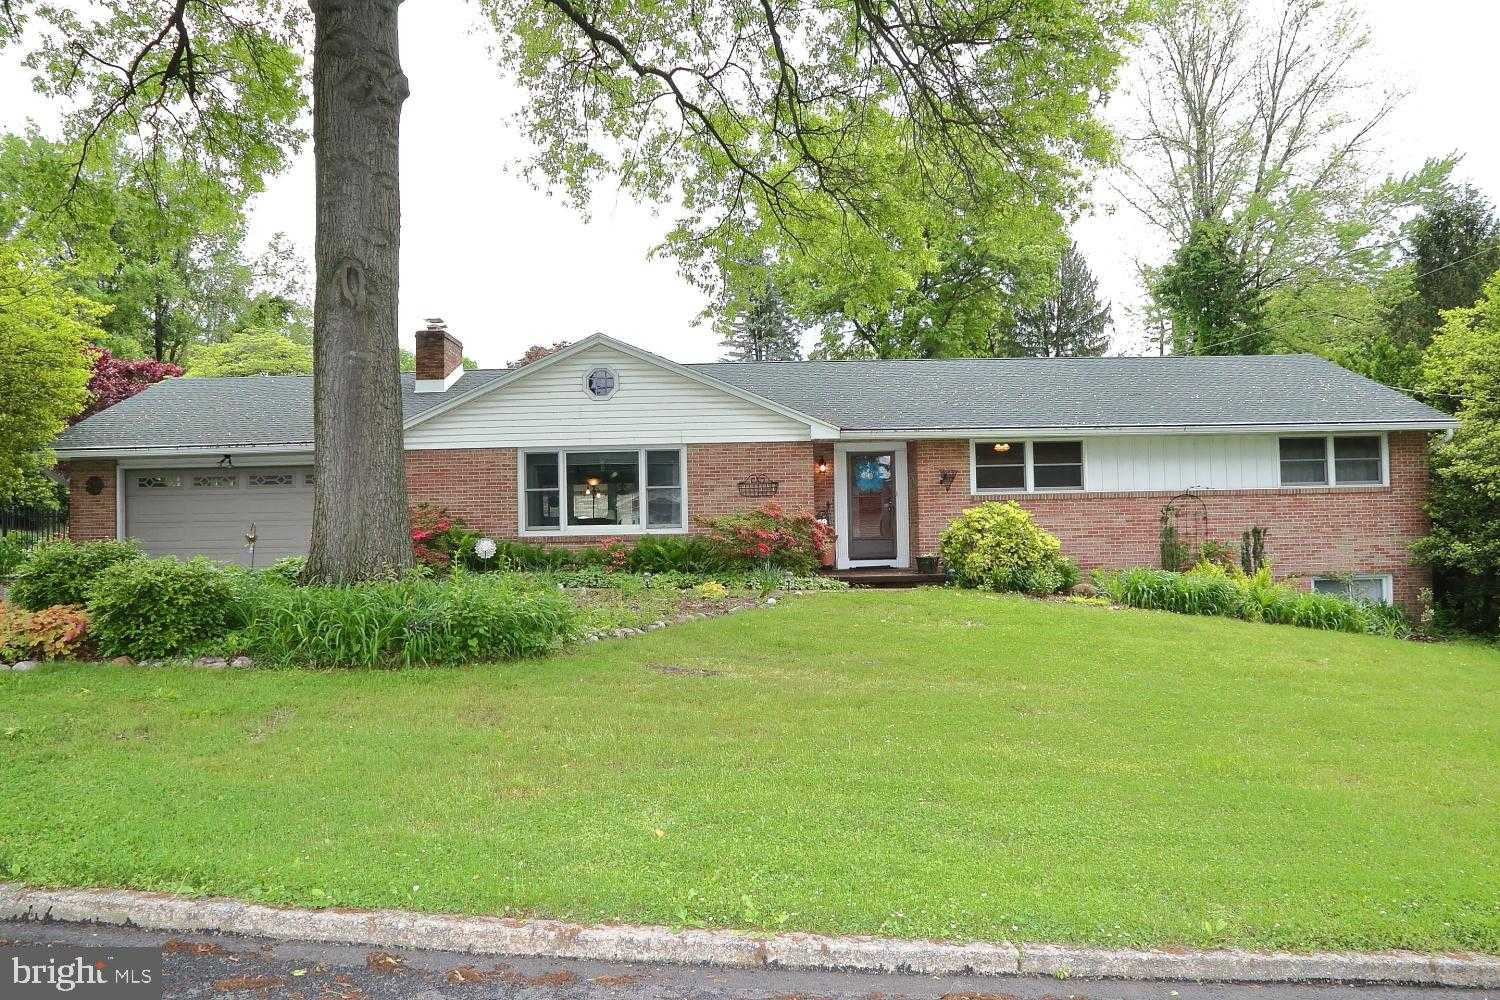 $309,900 - 5Br/3Ba -  for Sale in Country Club Hills, Camp Hill